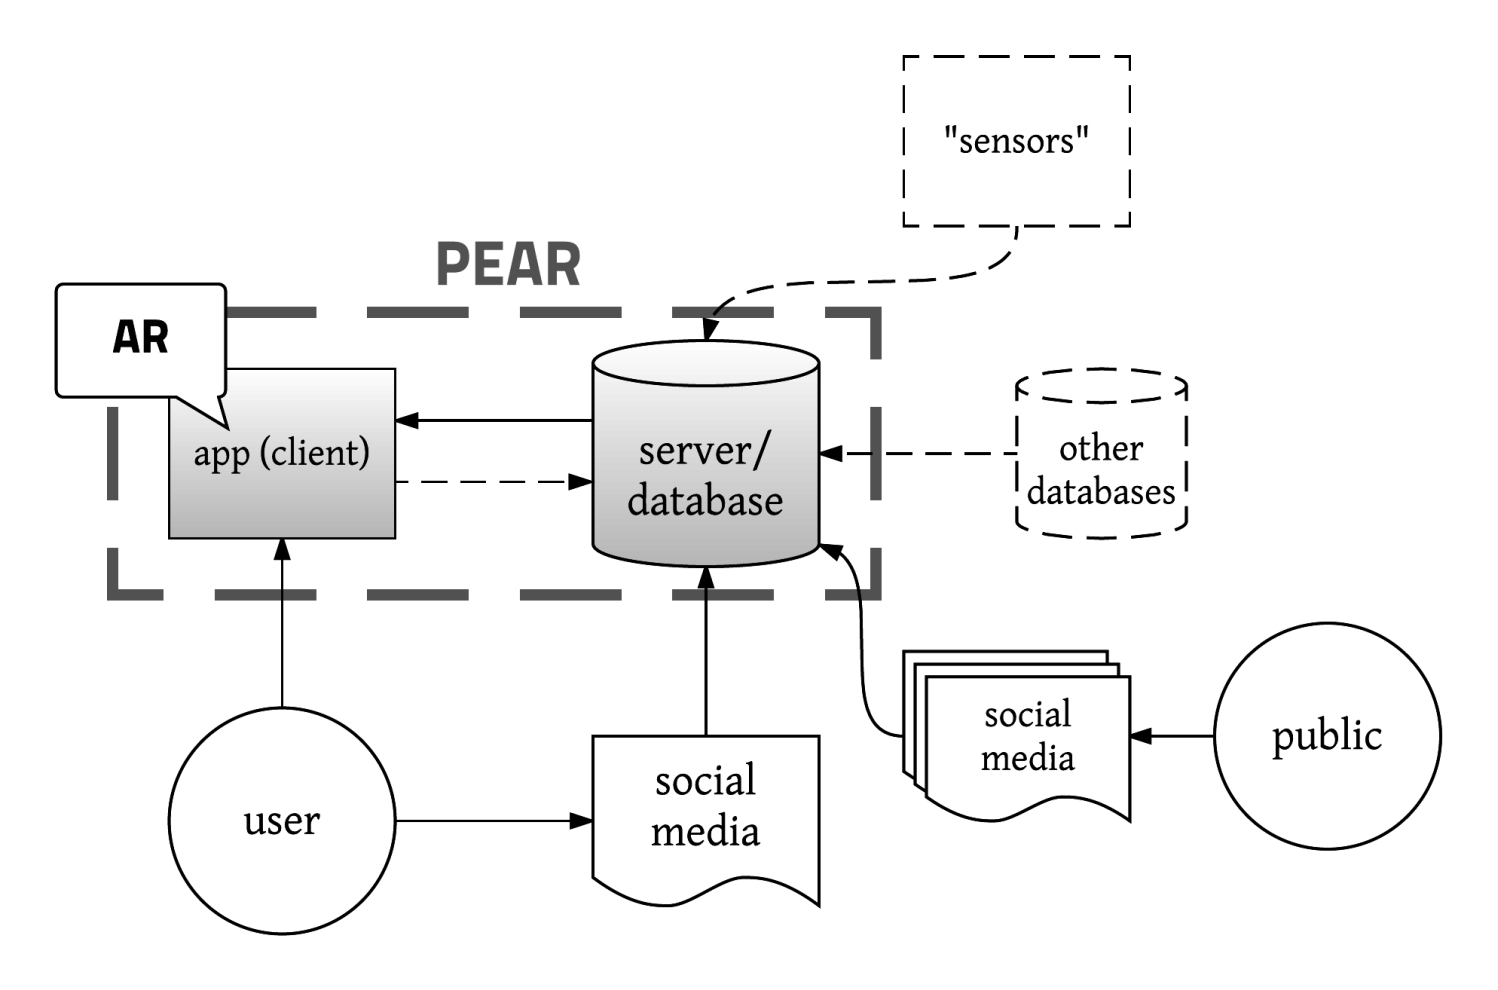 Project augmented reality for public engagement pear lnu pear diagram architecture illustration ccuart Images